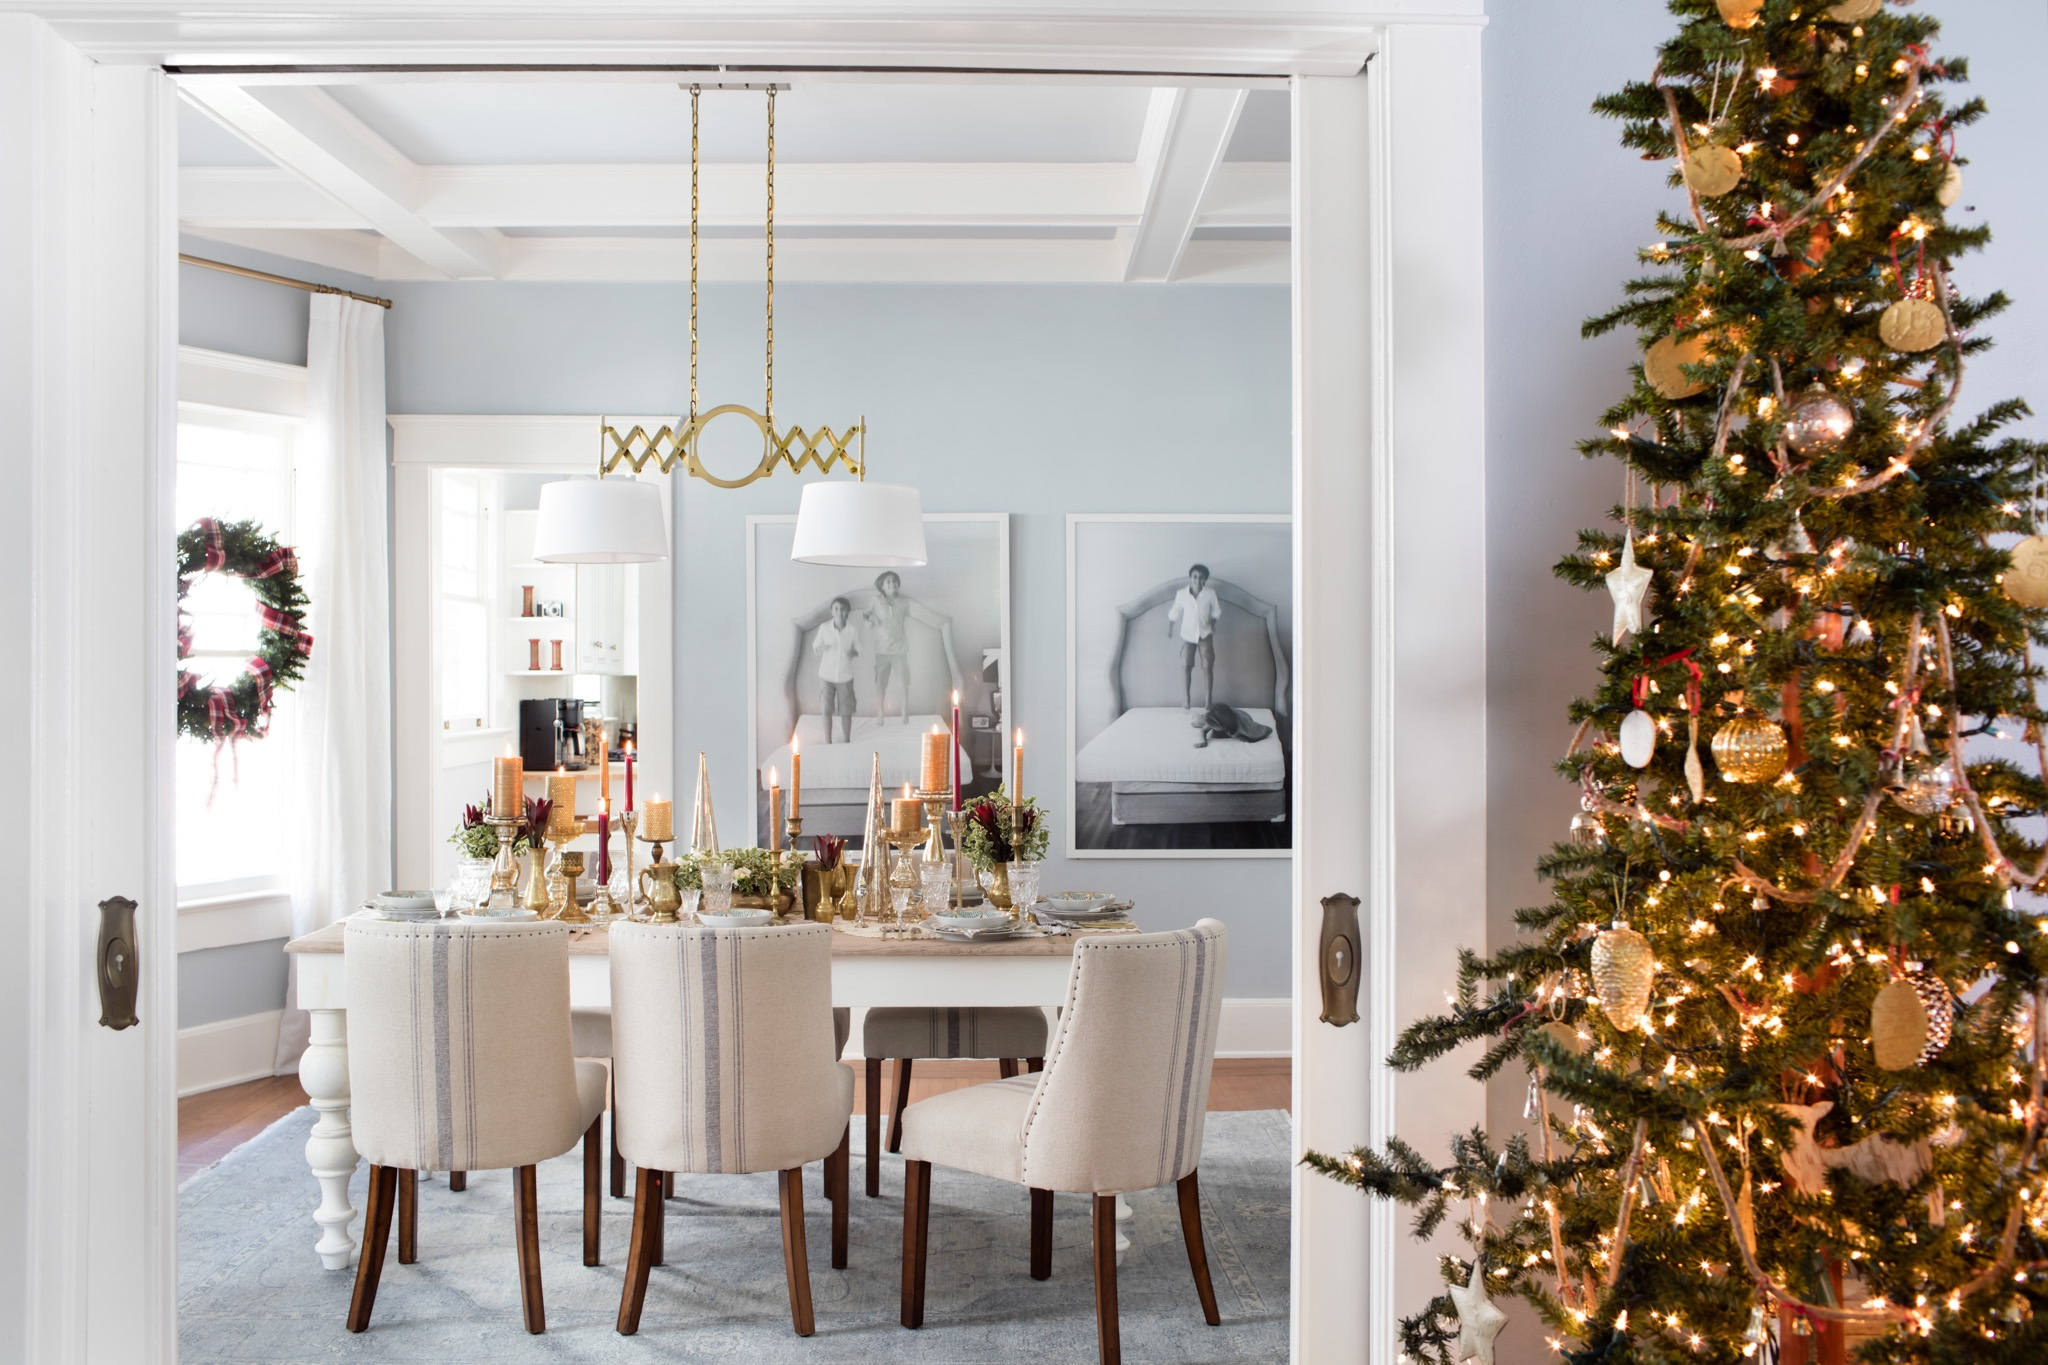 Festive Dining Room With Christmas Tree And Industrial Style Chandelier (Image 14 of 32)